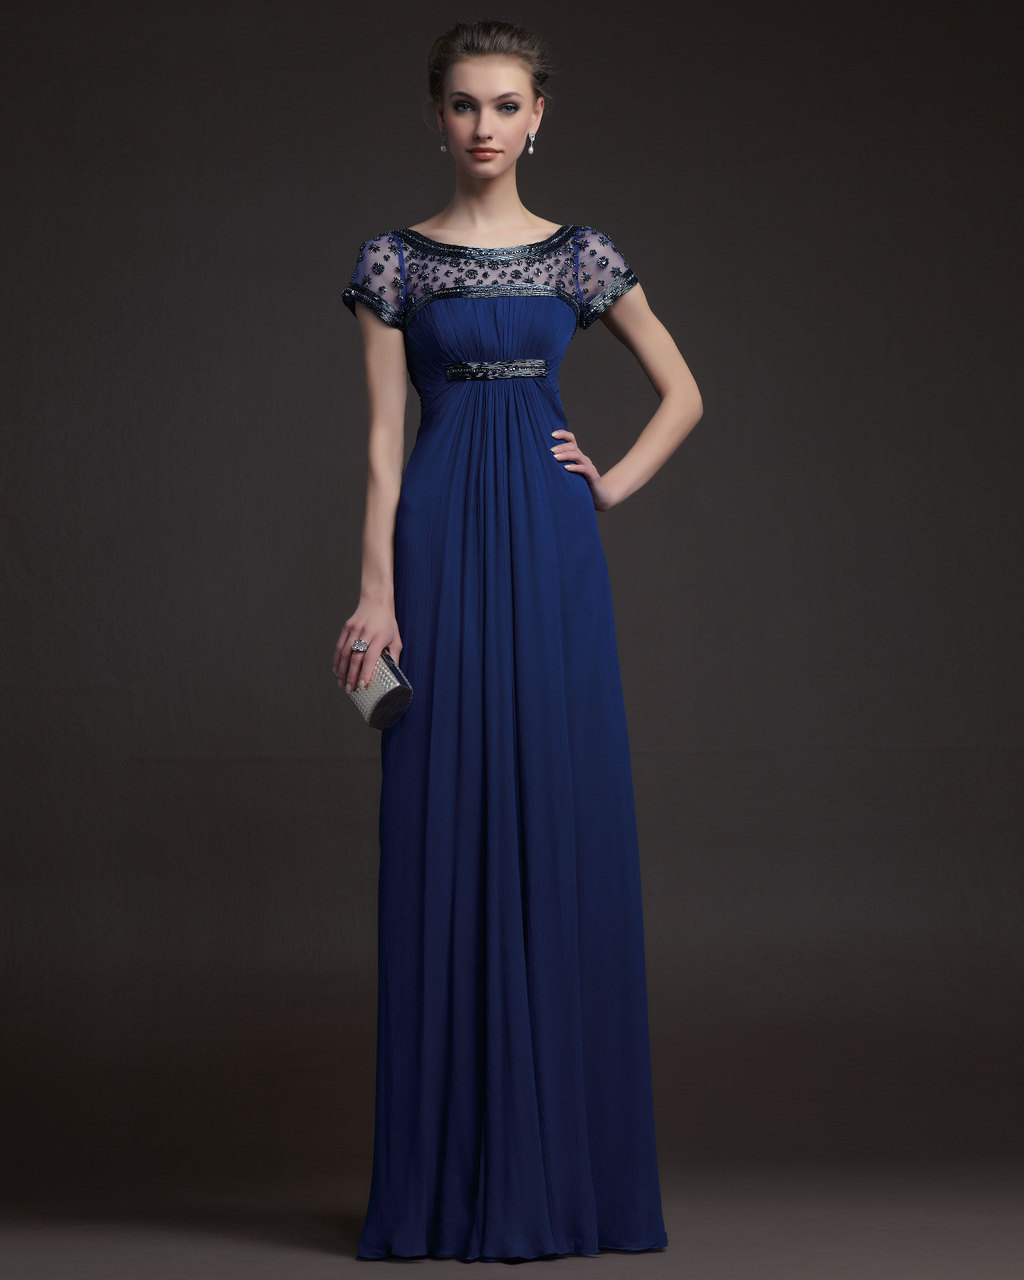 Gorgeous-2014-bridesmaid-dresses-from-aire-barcelona-navy-with-beaded-cap-sleeves.full